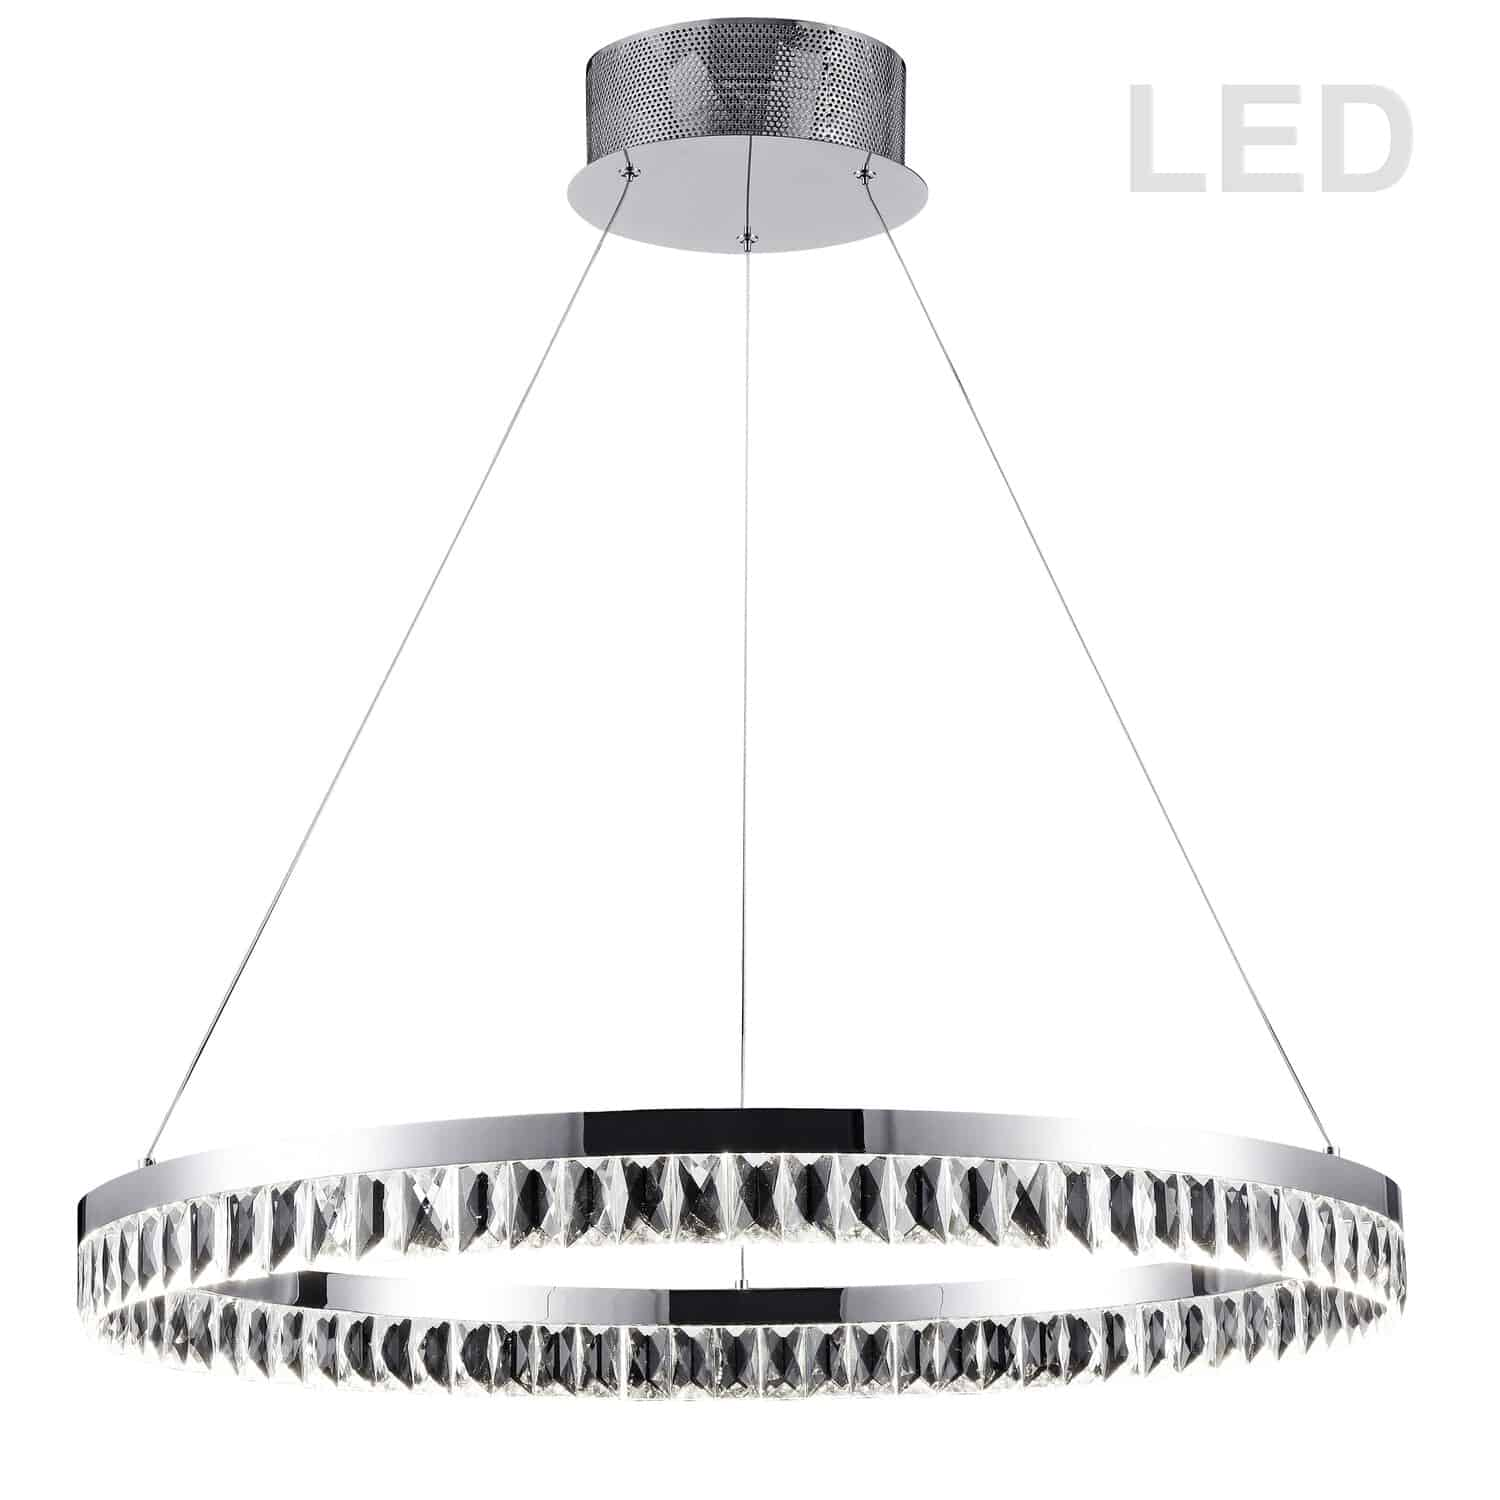 57W LED Round Chandelier, Polished Chrome Finish with Crystals hanging